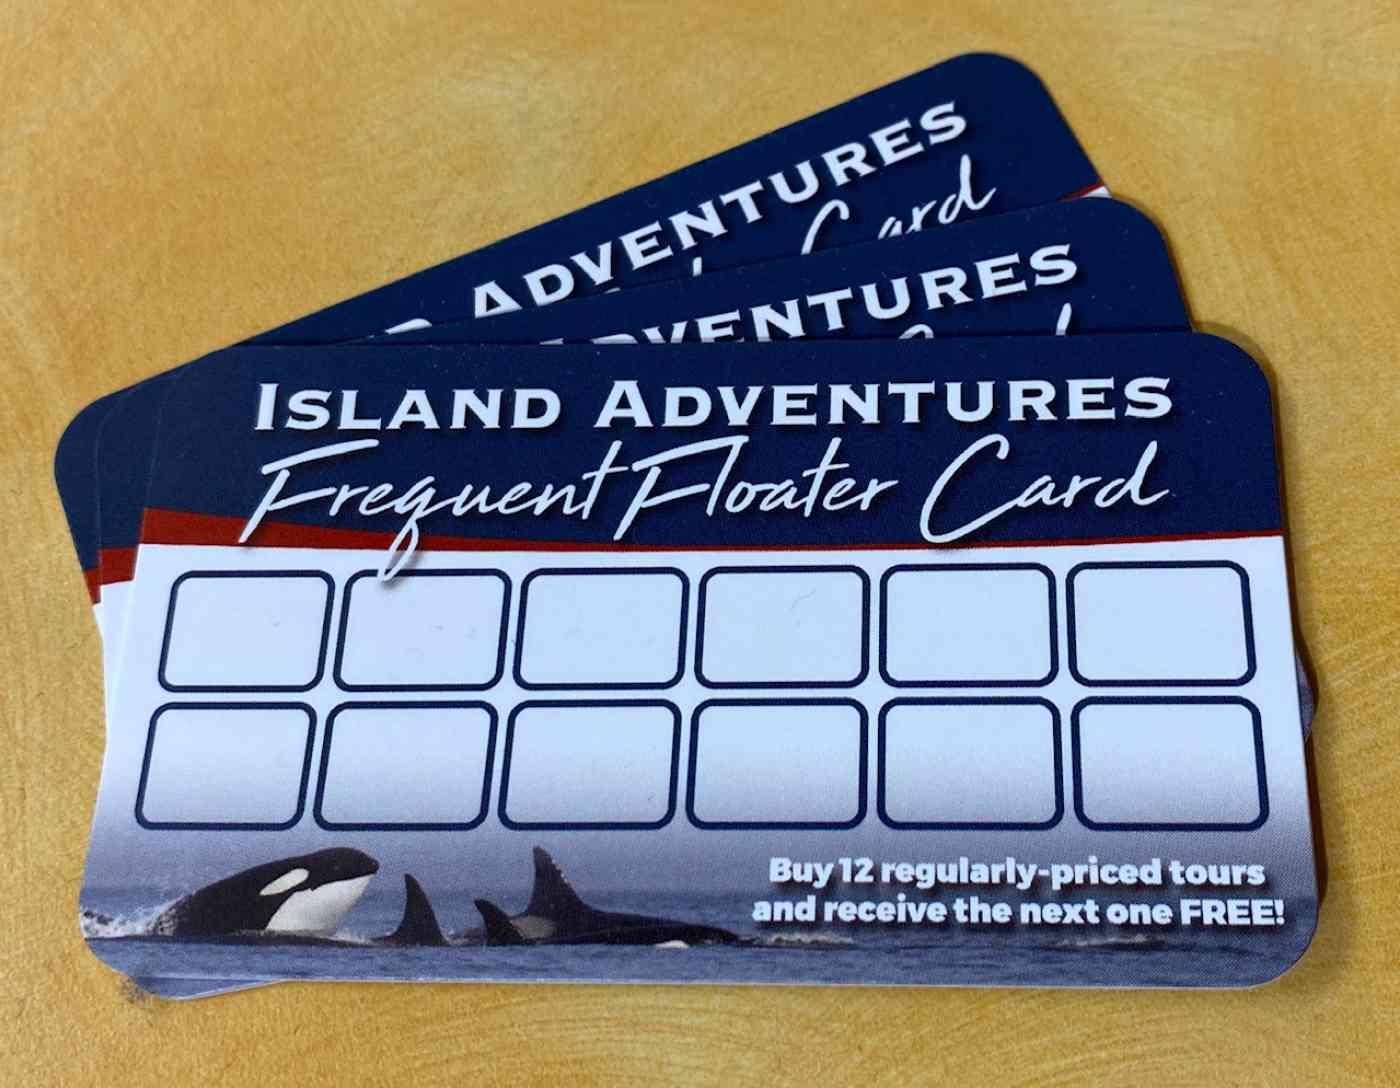 Frequent Floater Card